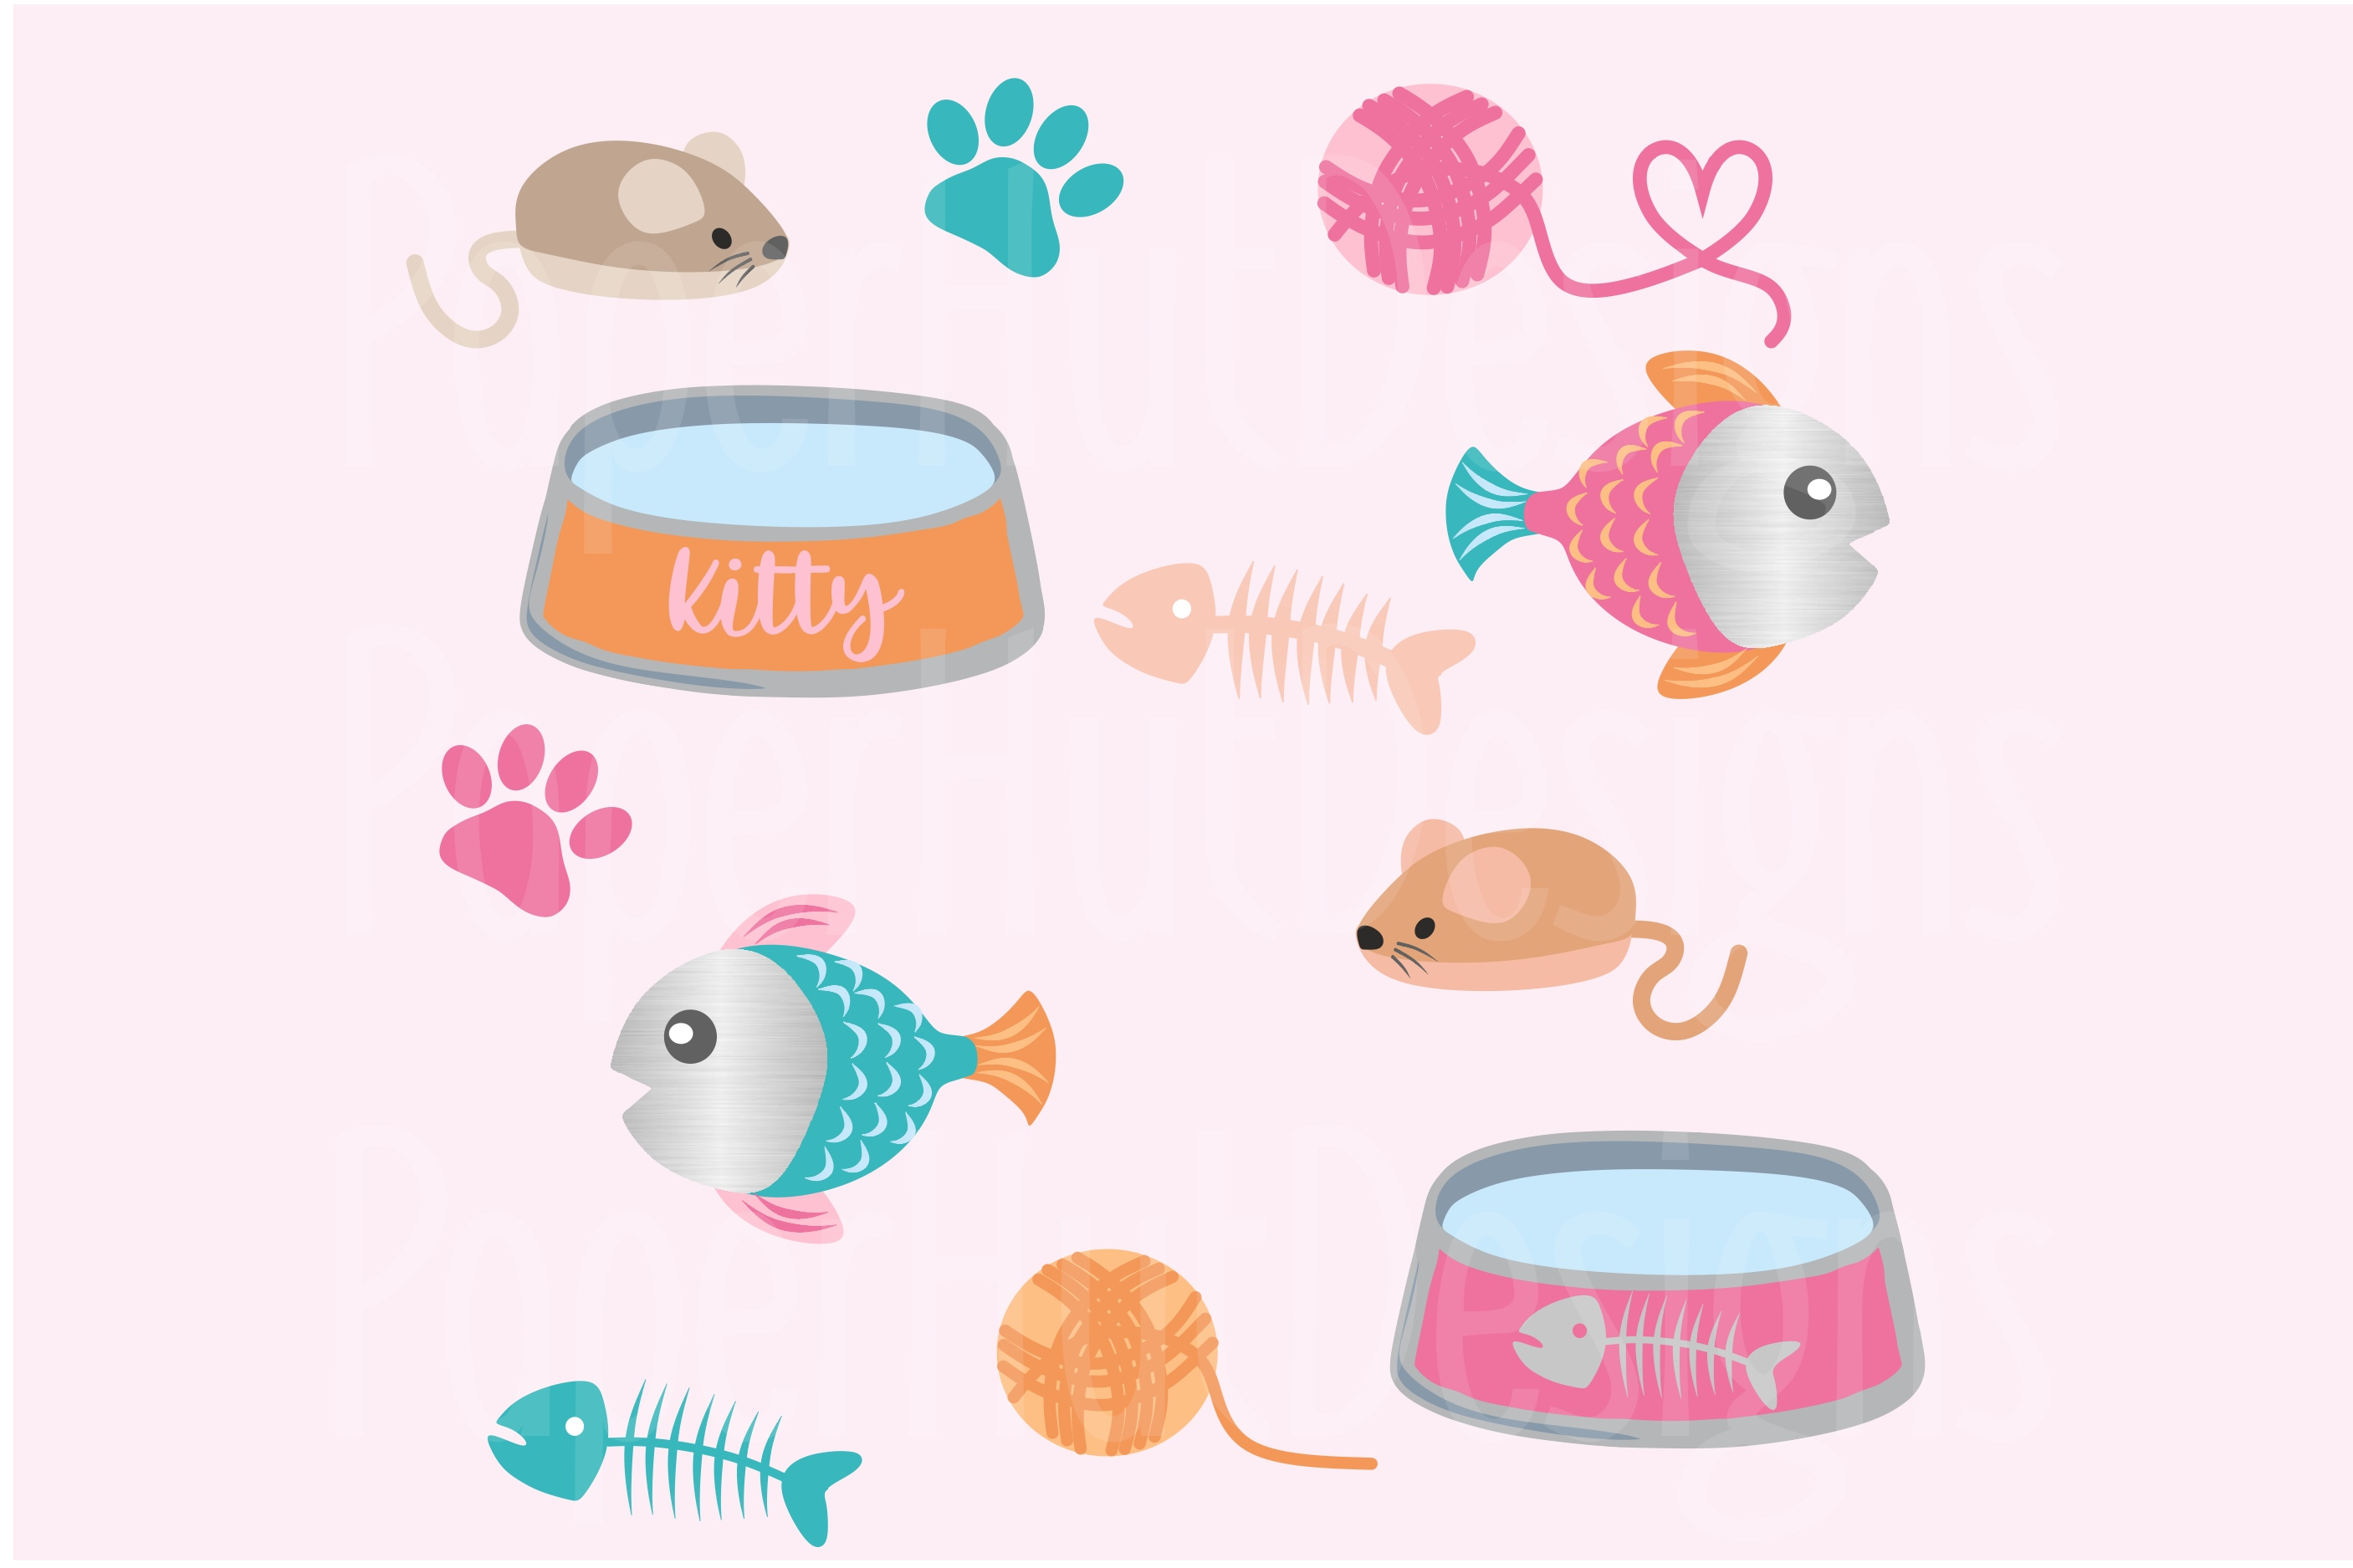 Cute Cats Clipart Part 2 example image 3